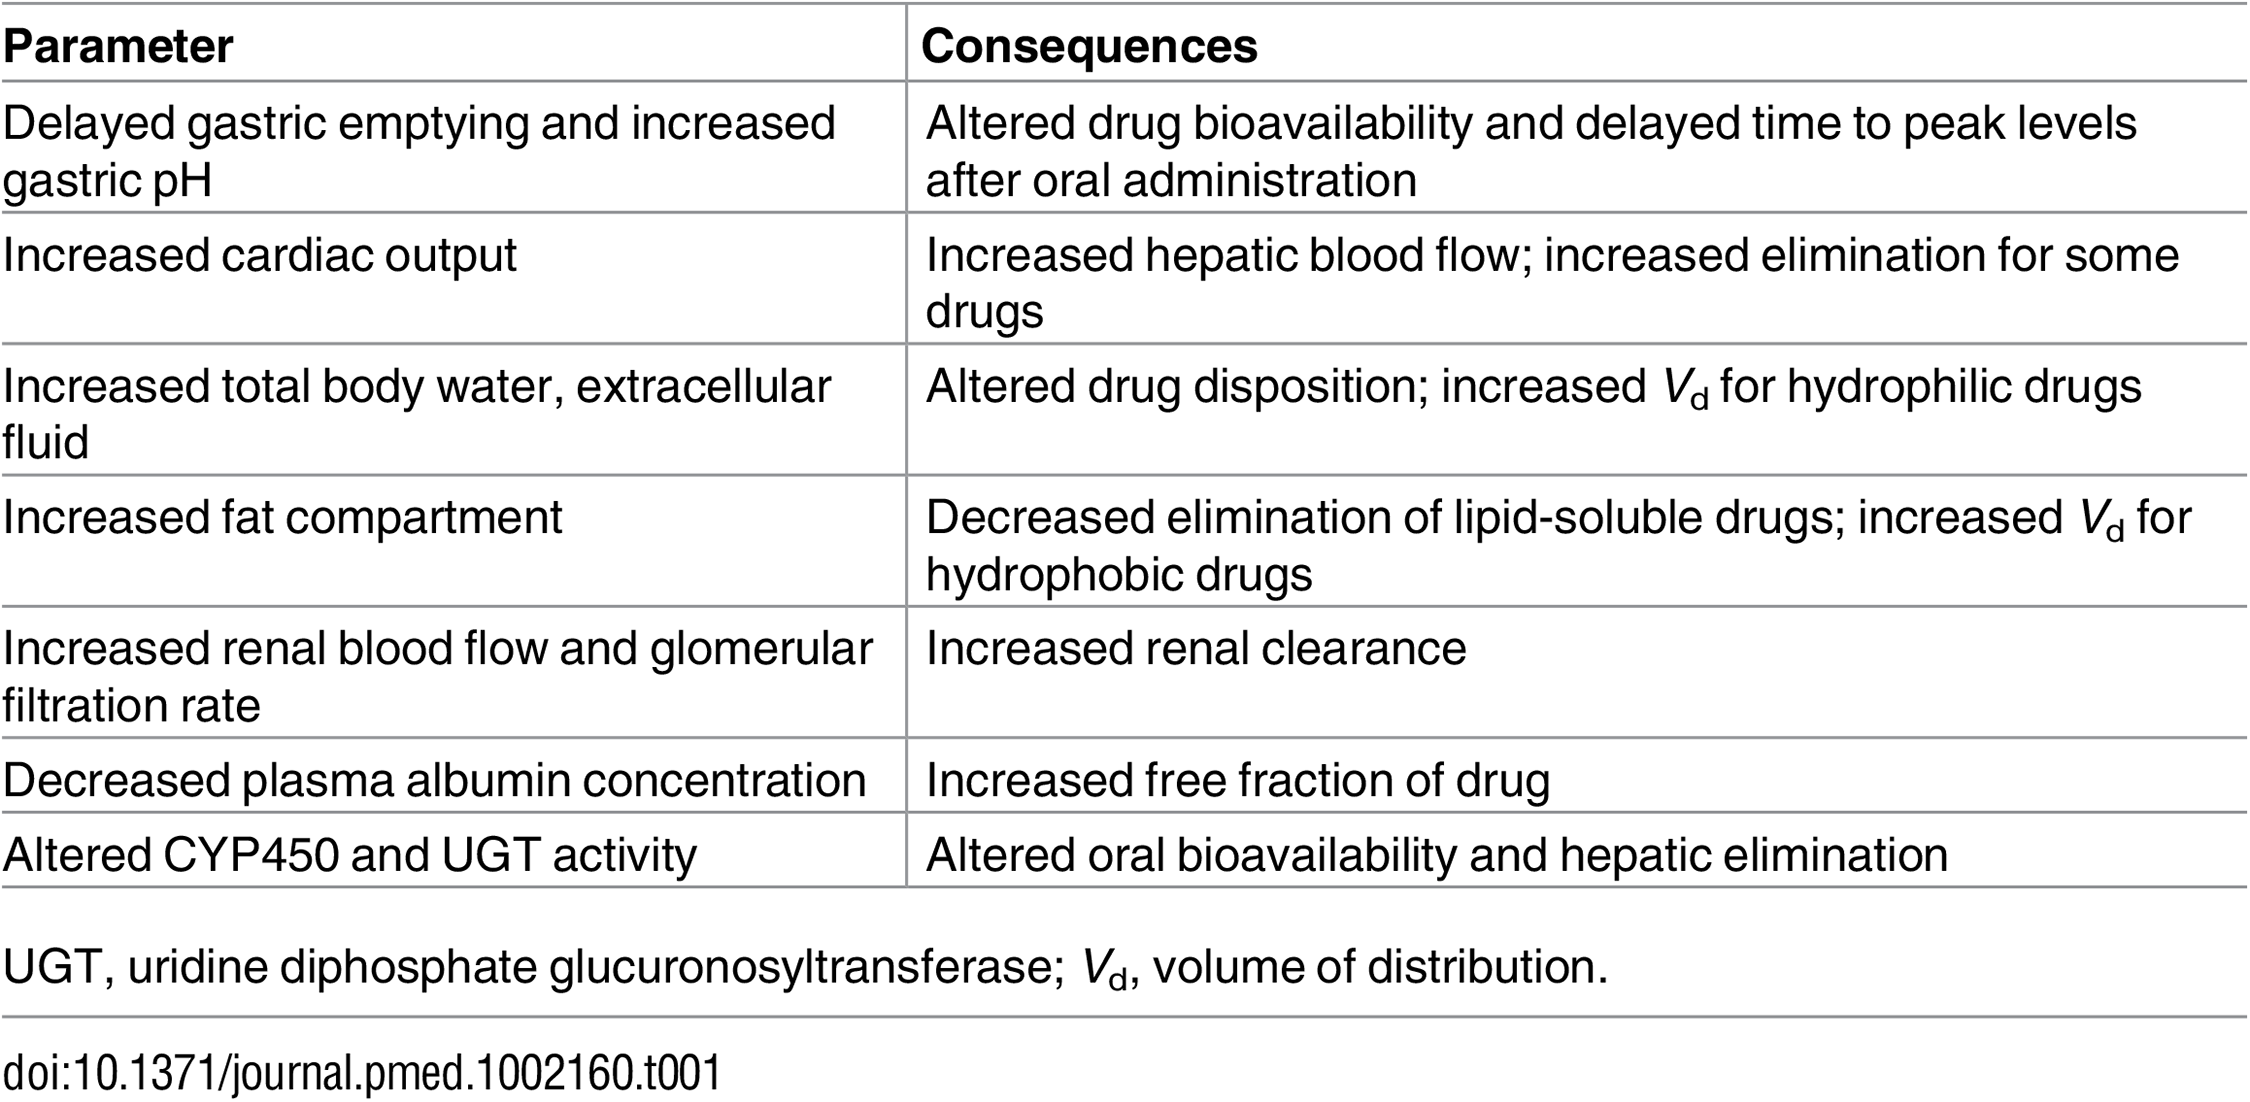 Physiological changes during pregnancy: effects on drug disposition [<em class=&quot;ref&quot;>10</em>–<em class=&quot;ref&quot;>16</em>].